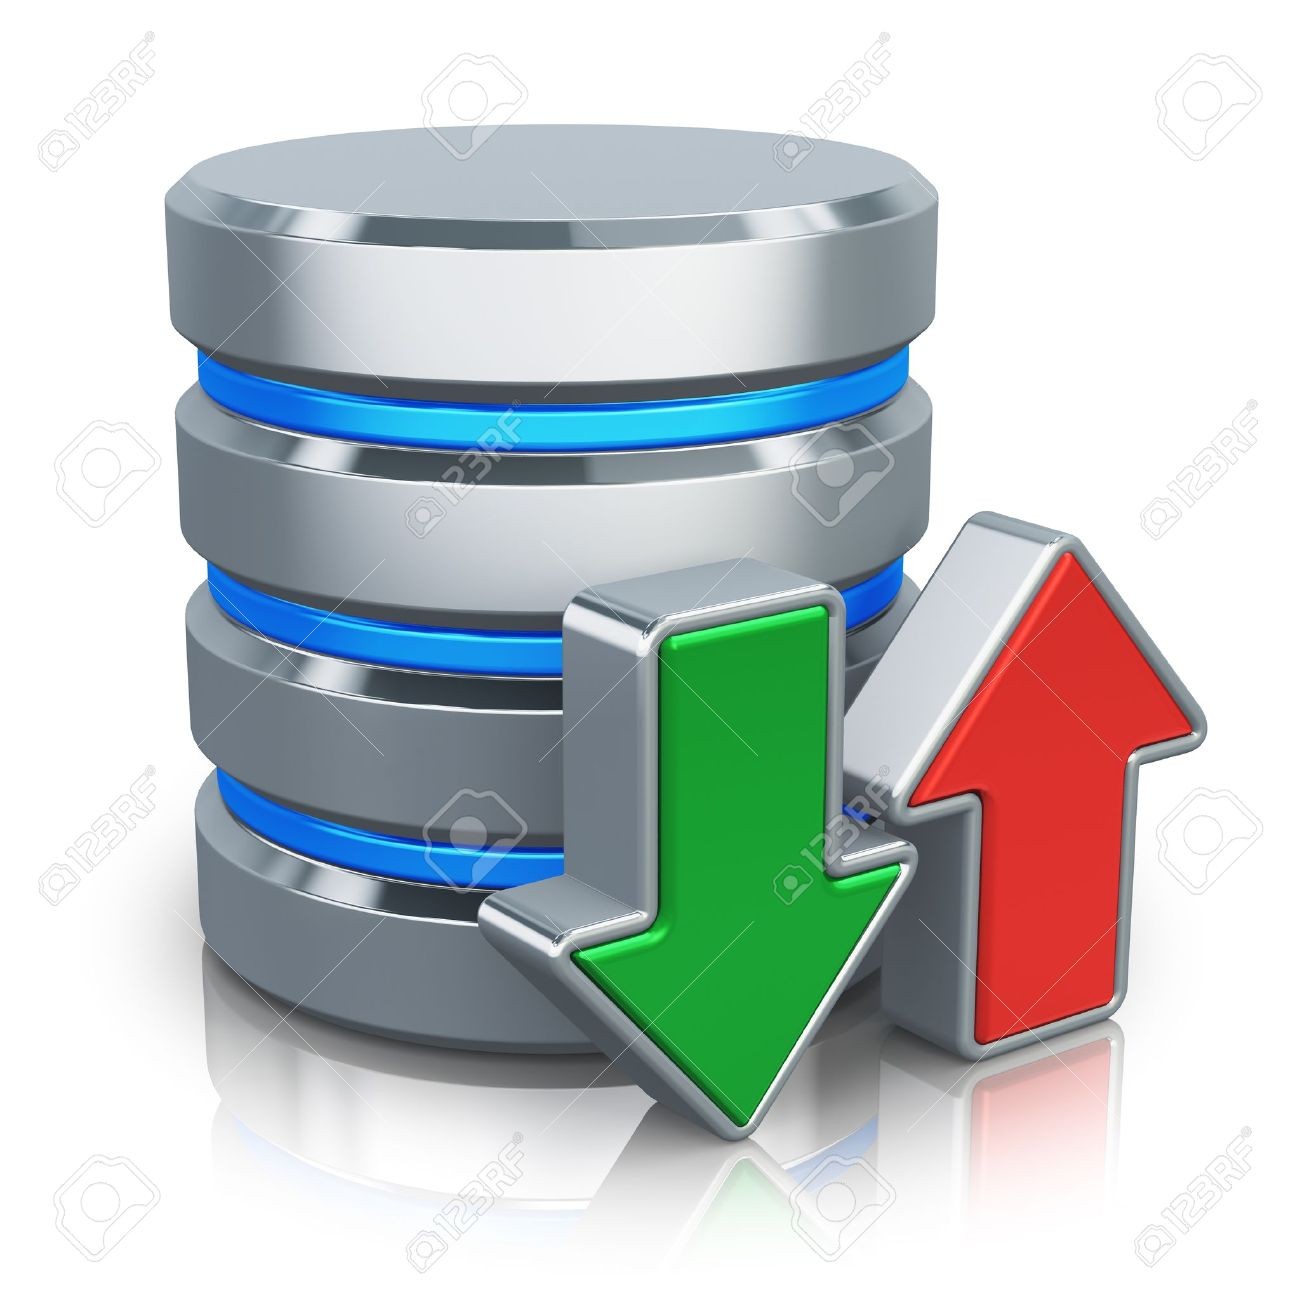 HDD business database, backup and cloud computing service concept